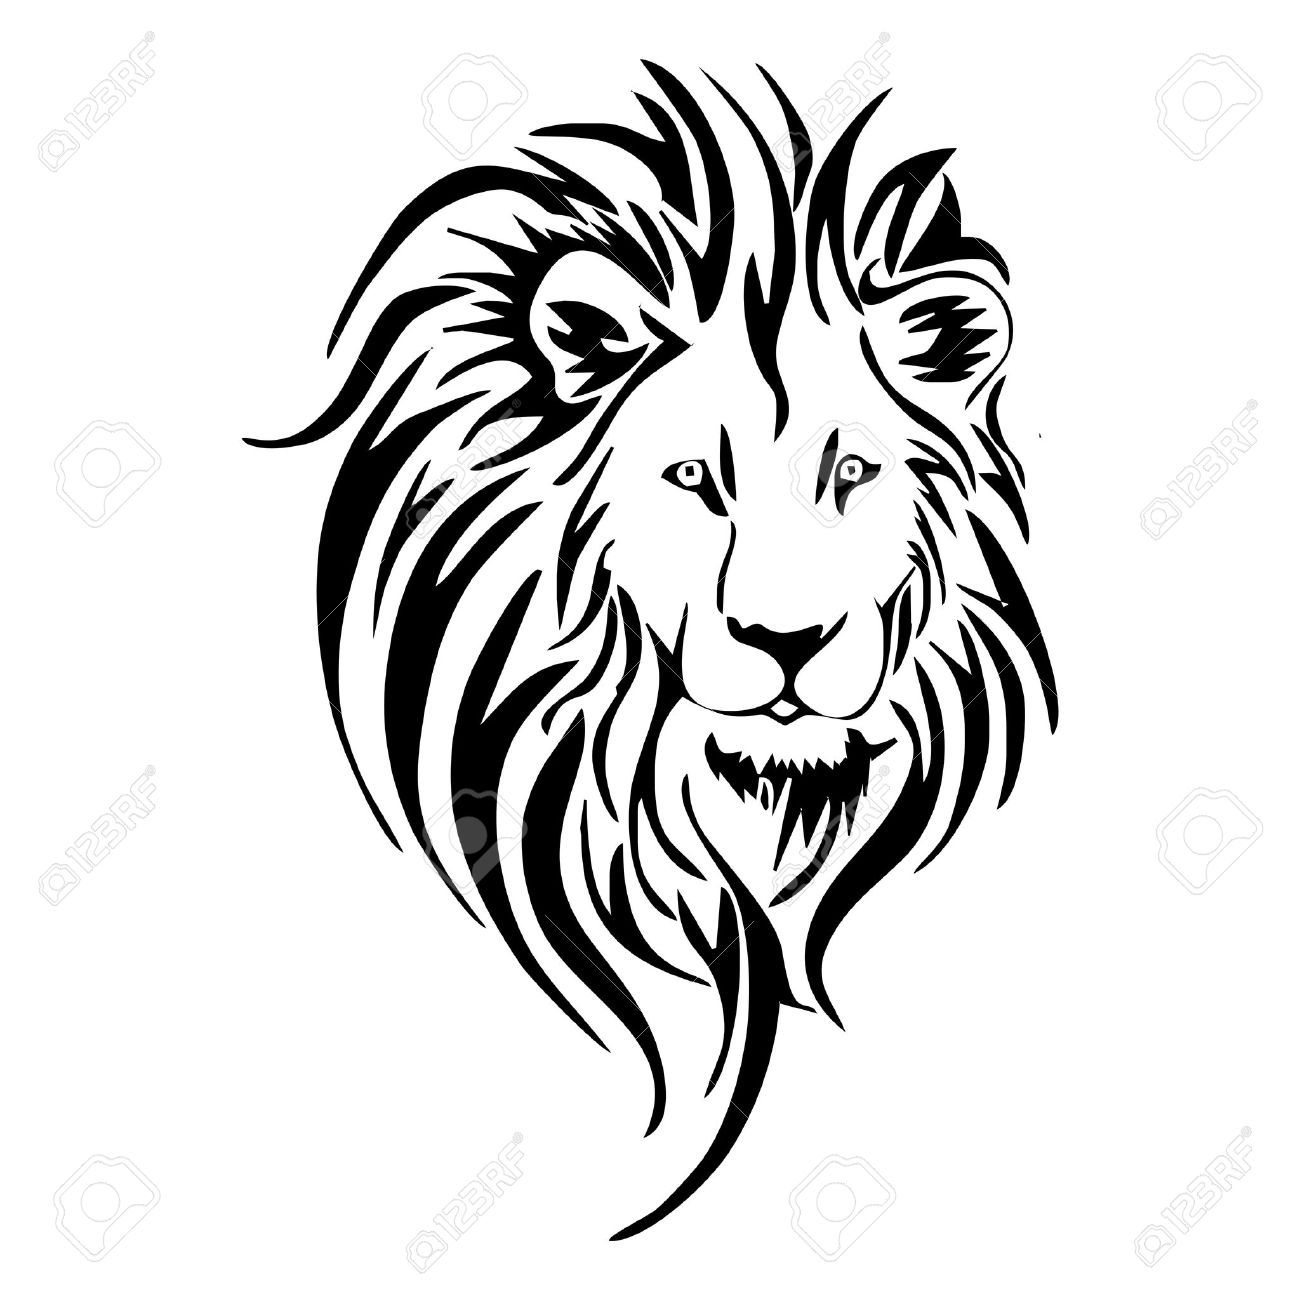 lion head tattoo royalty free cliparts vectors and stock  [ 1300 x 1300 Pixel ]